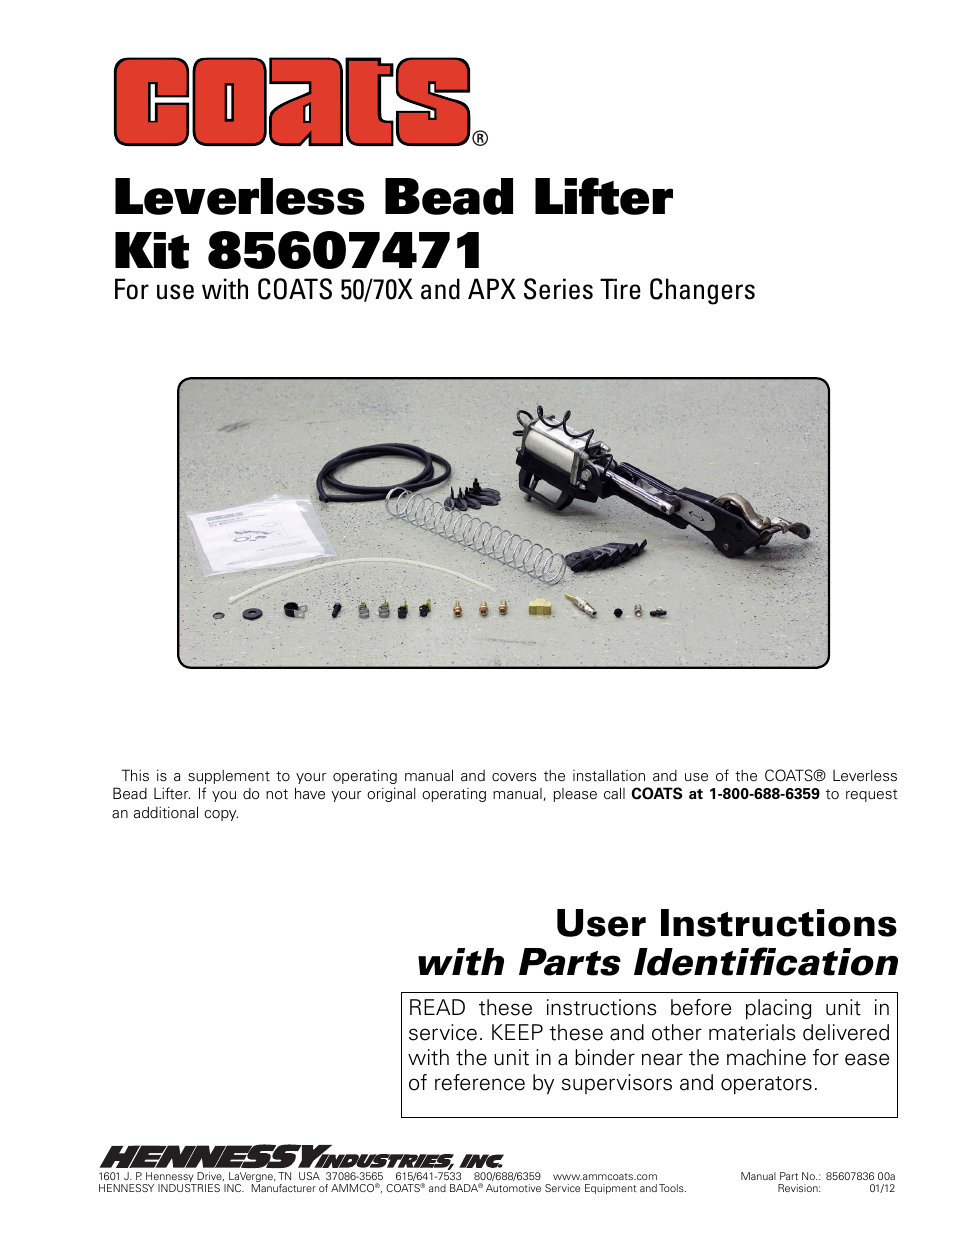 coats kit 85607471 leverless bead lifter user manual 12 pages rh manualsdir com Ammco Brake Tools Ammco Tire Changers